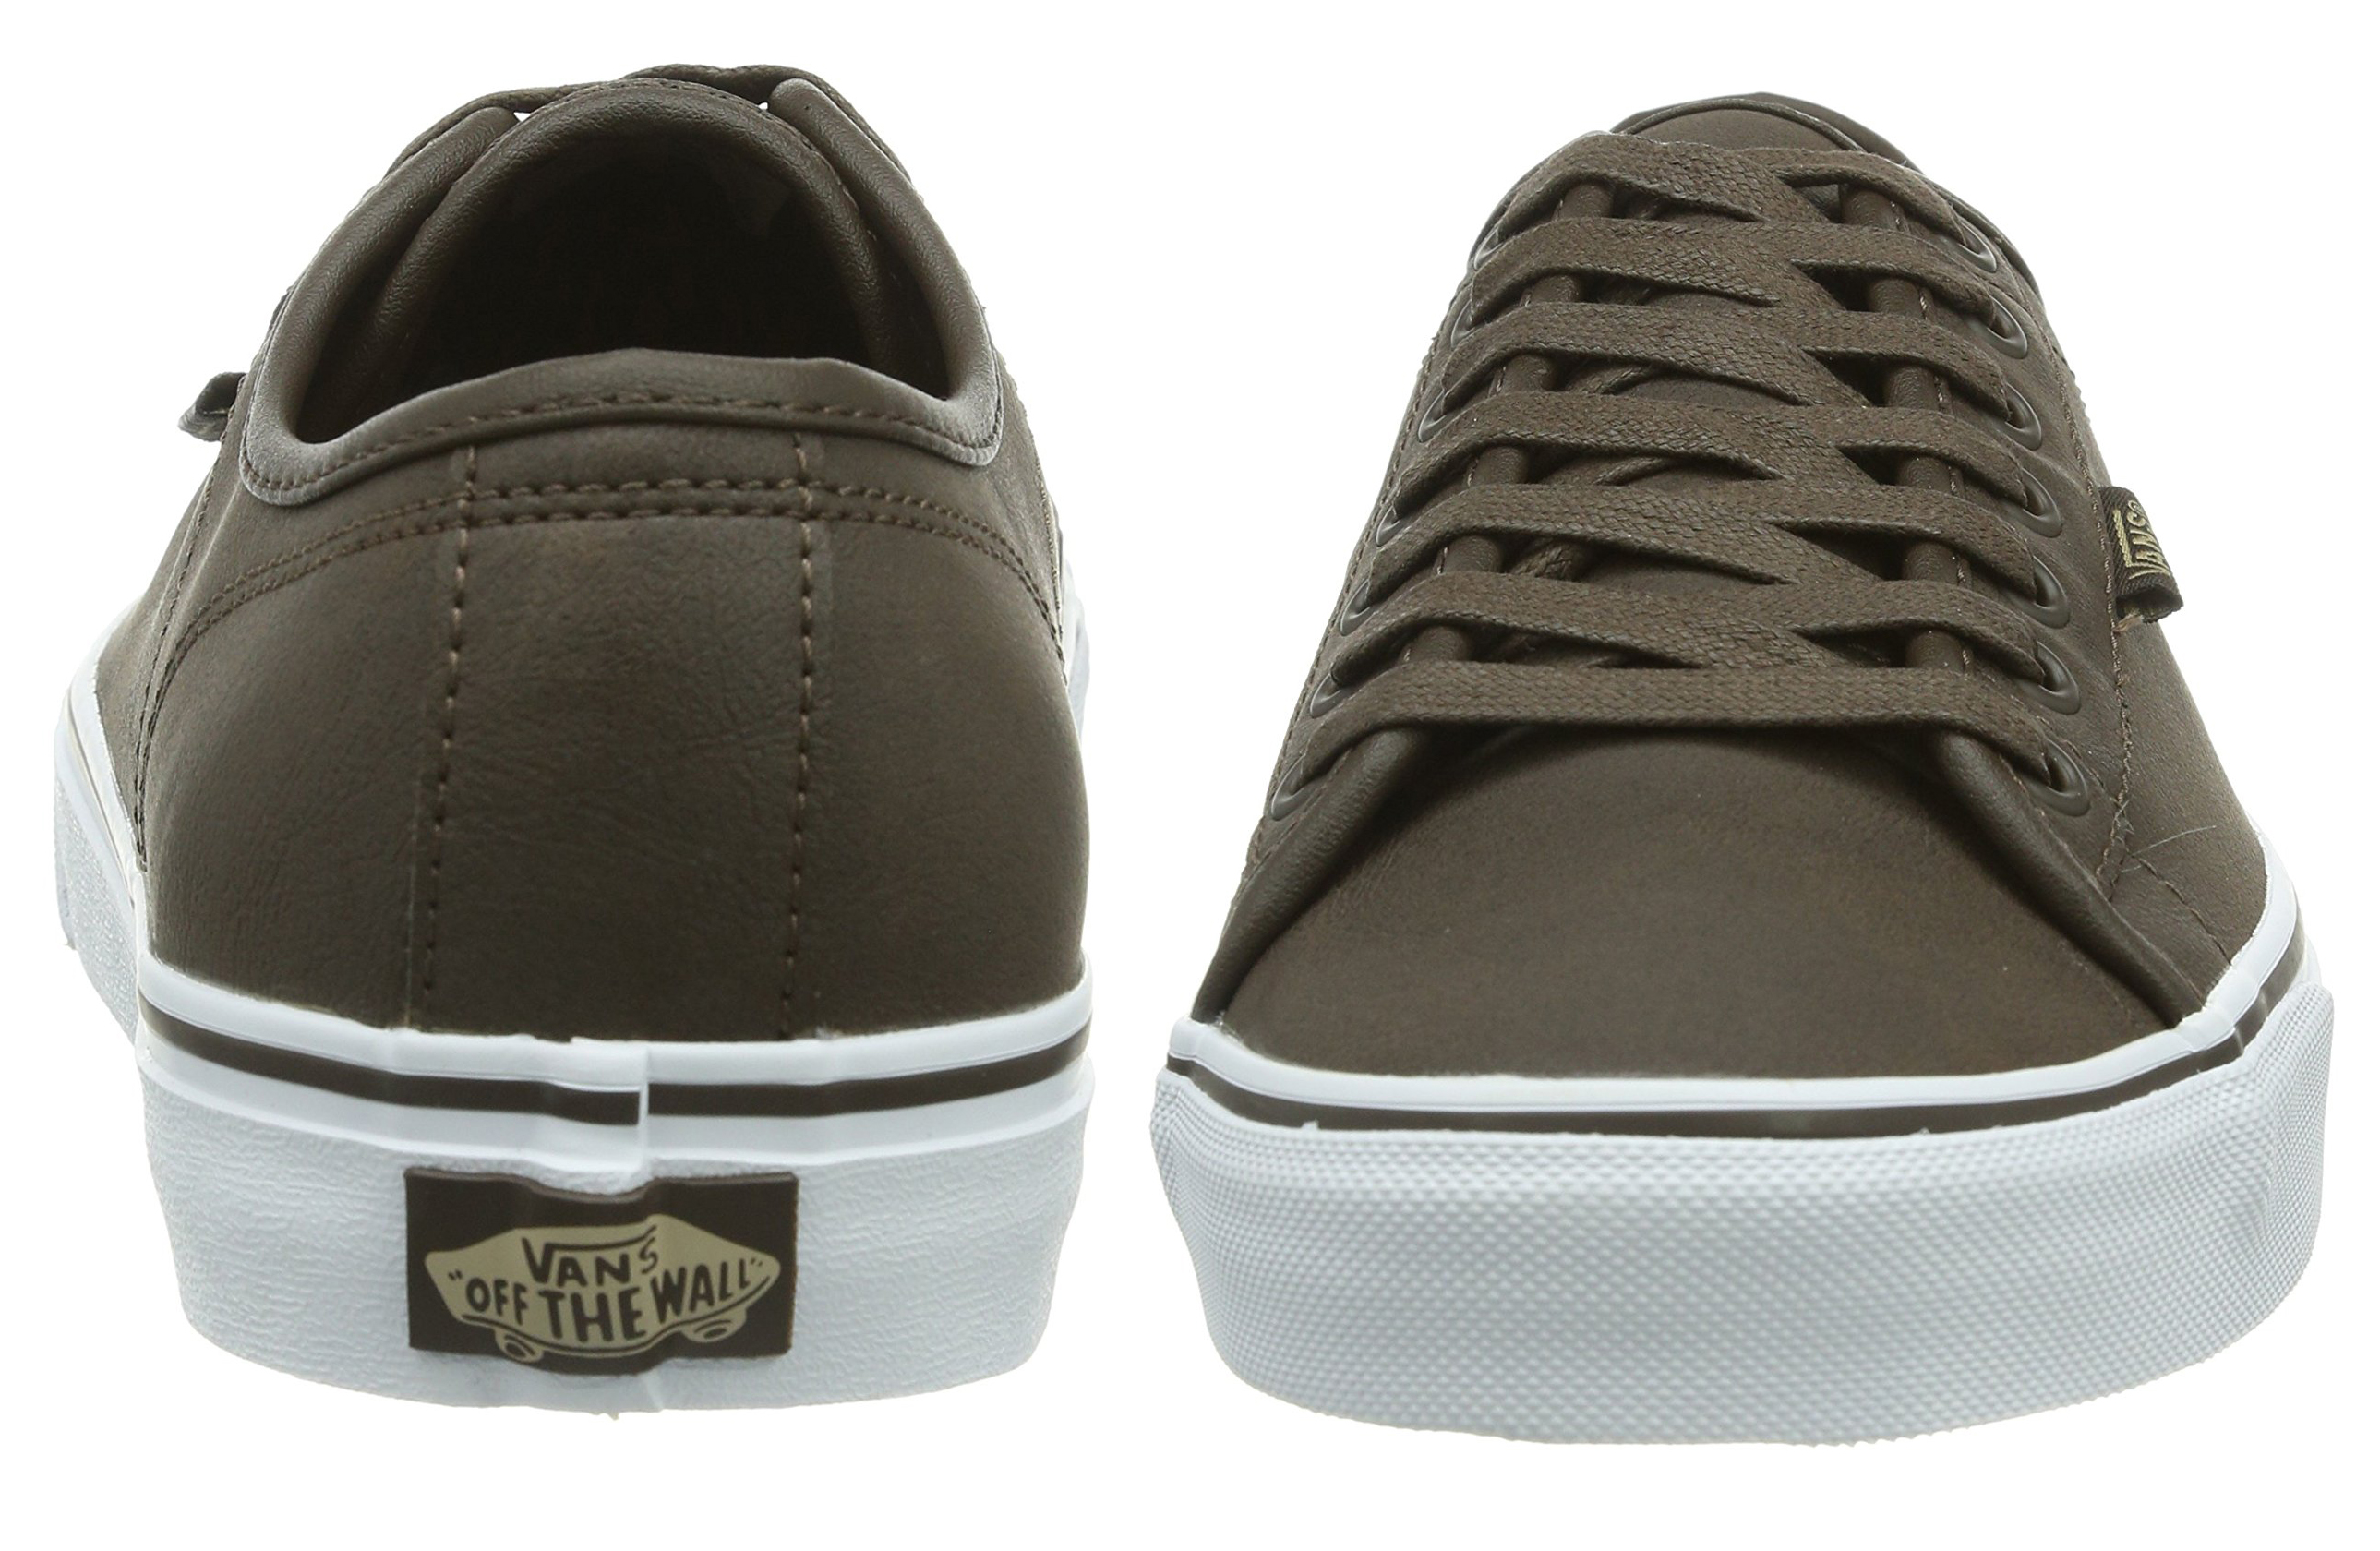 92c31ce1a6 Click on the Image to Enlarge. More Details. The Vans Ferris leather buck  low top mens ...